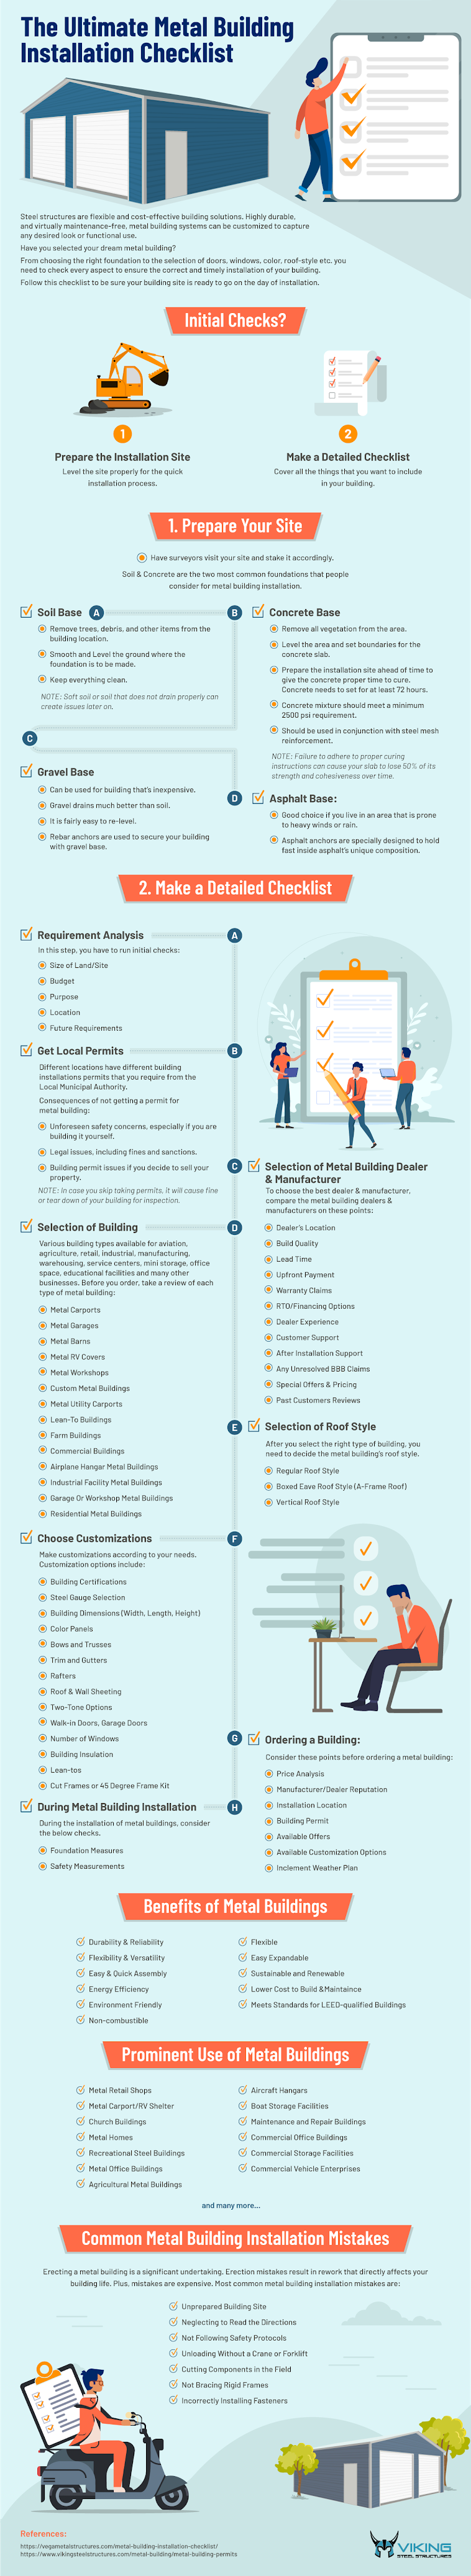 The Ultimate Metal Building Installation Checklist  #infographic #Construction #infographics